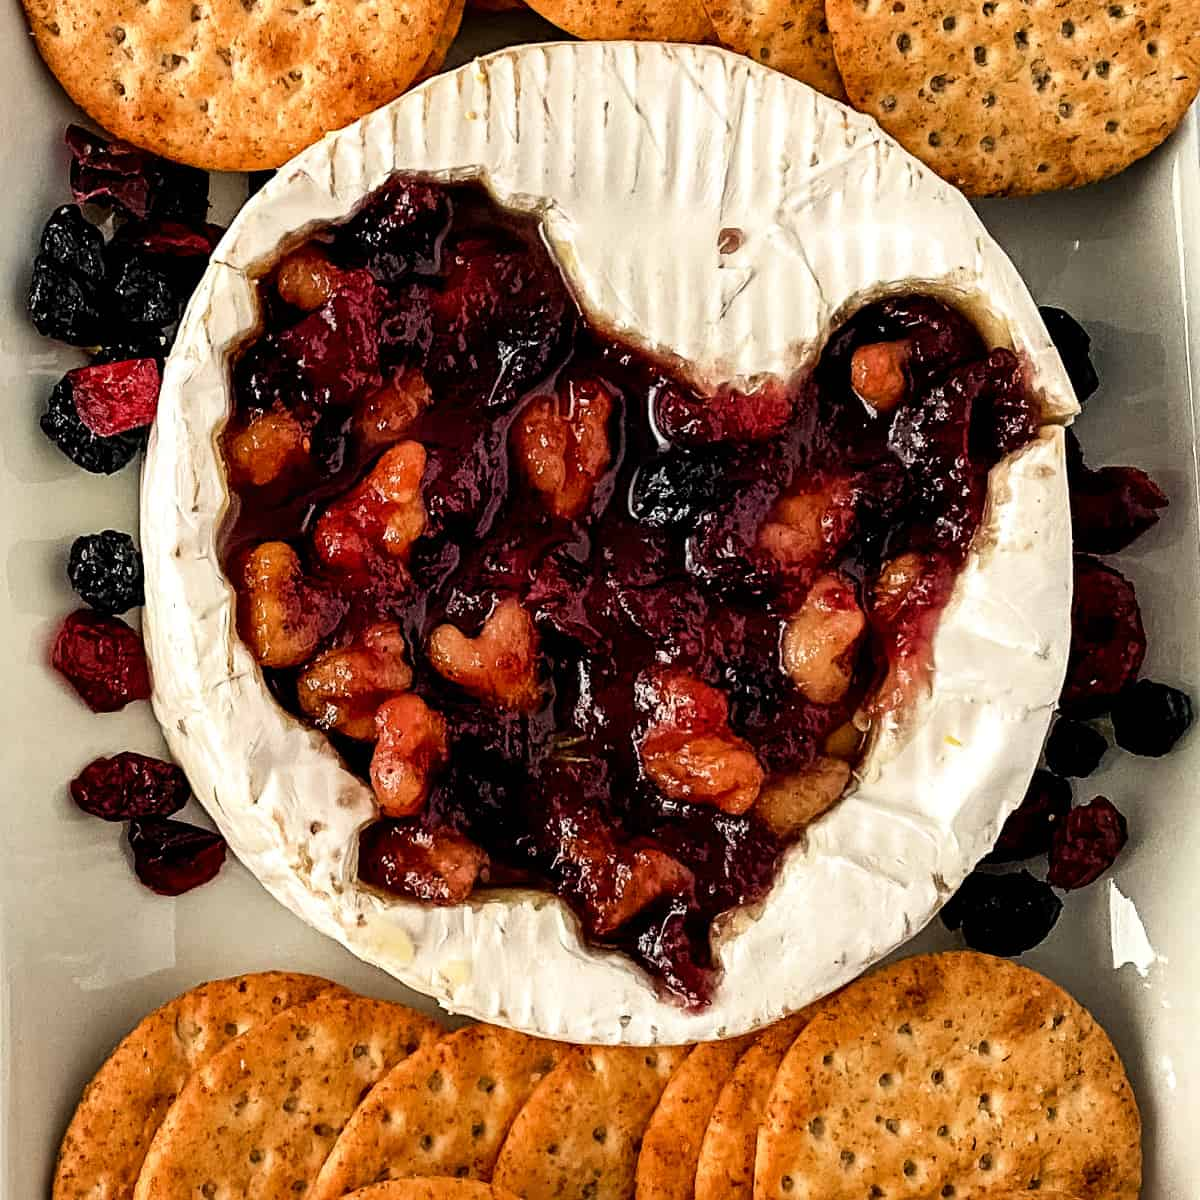 Top down view of brie and crackers.